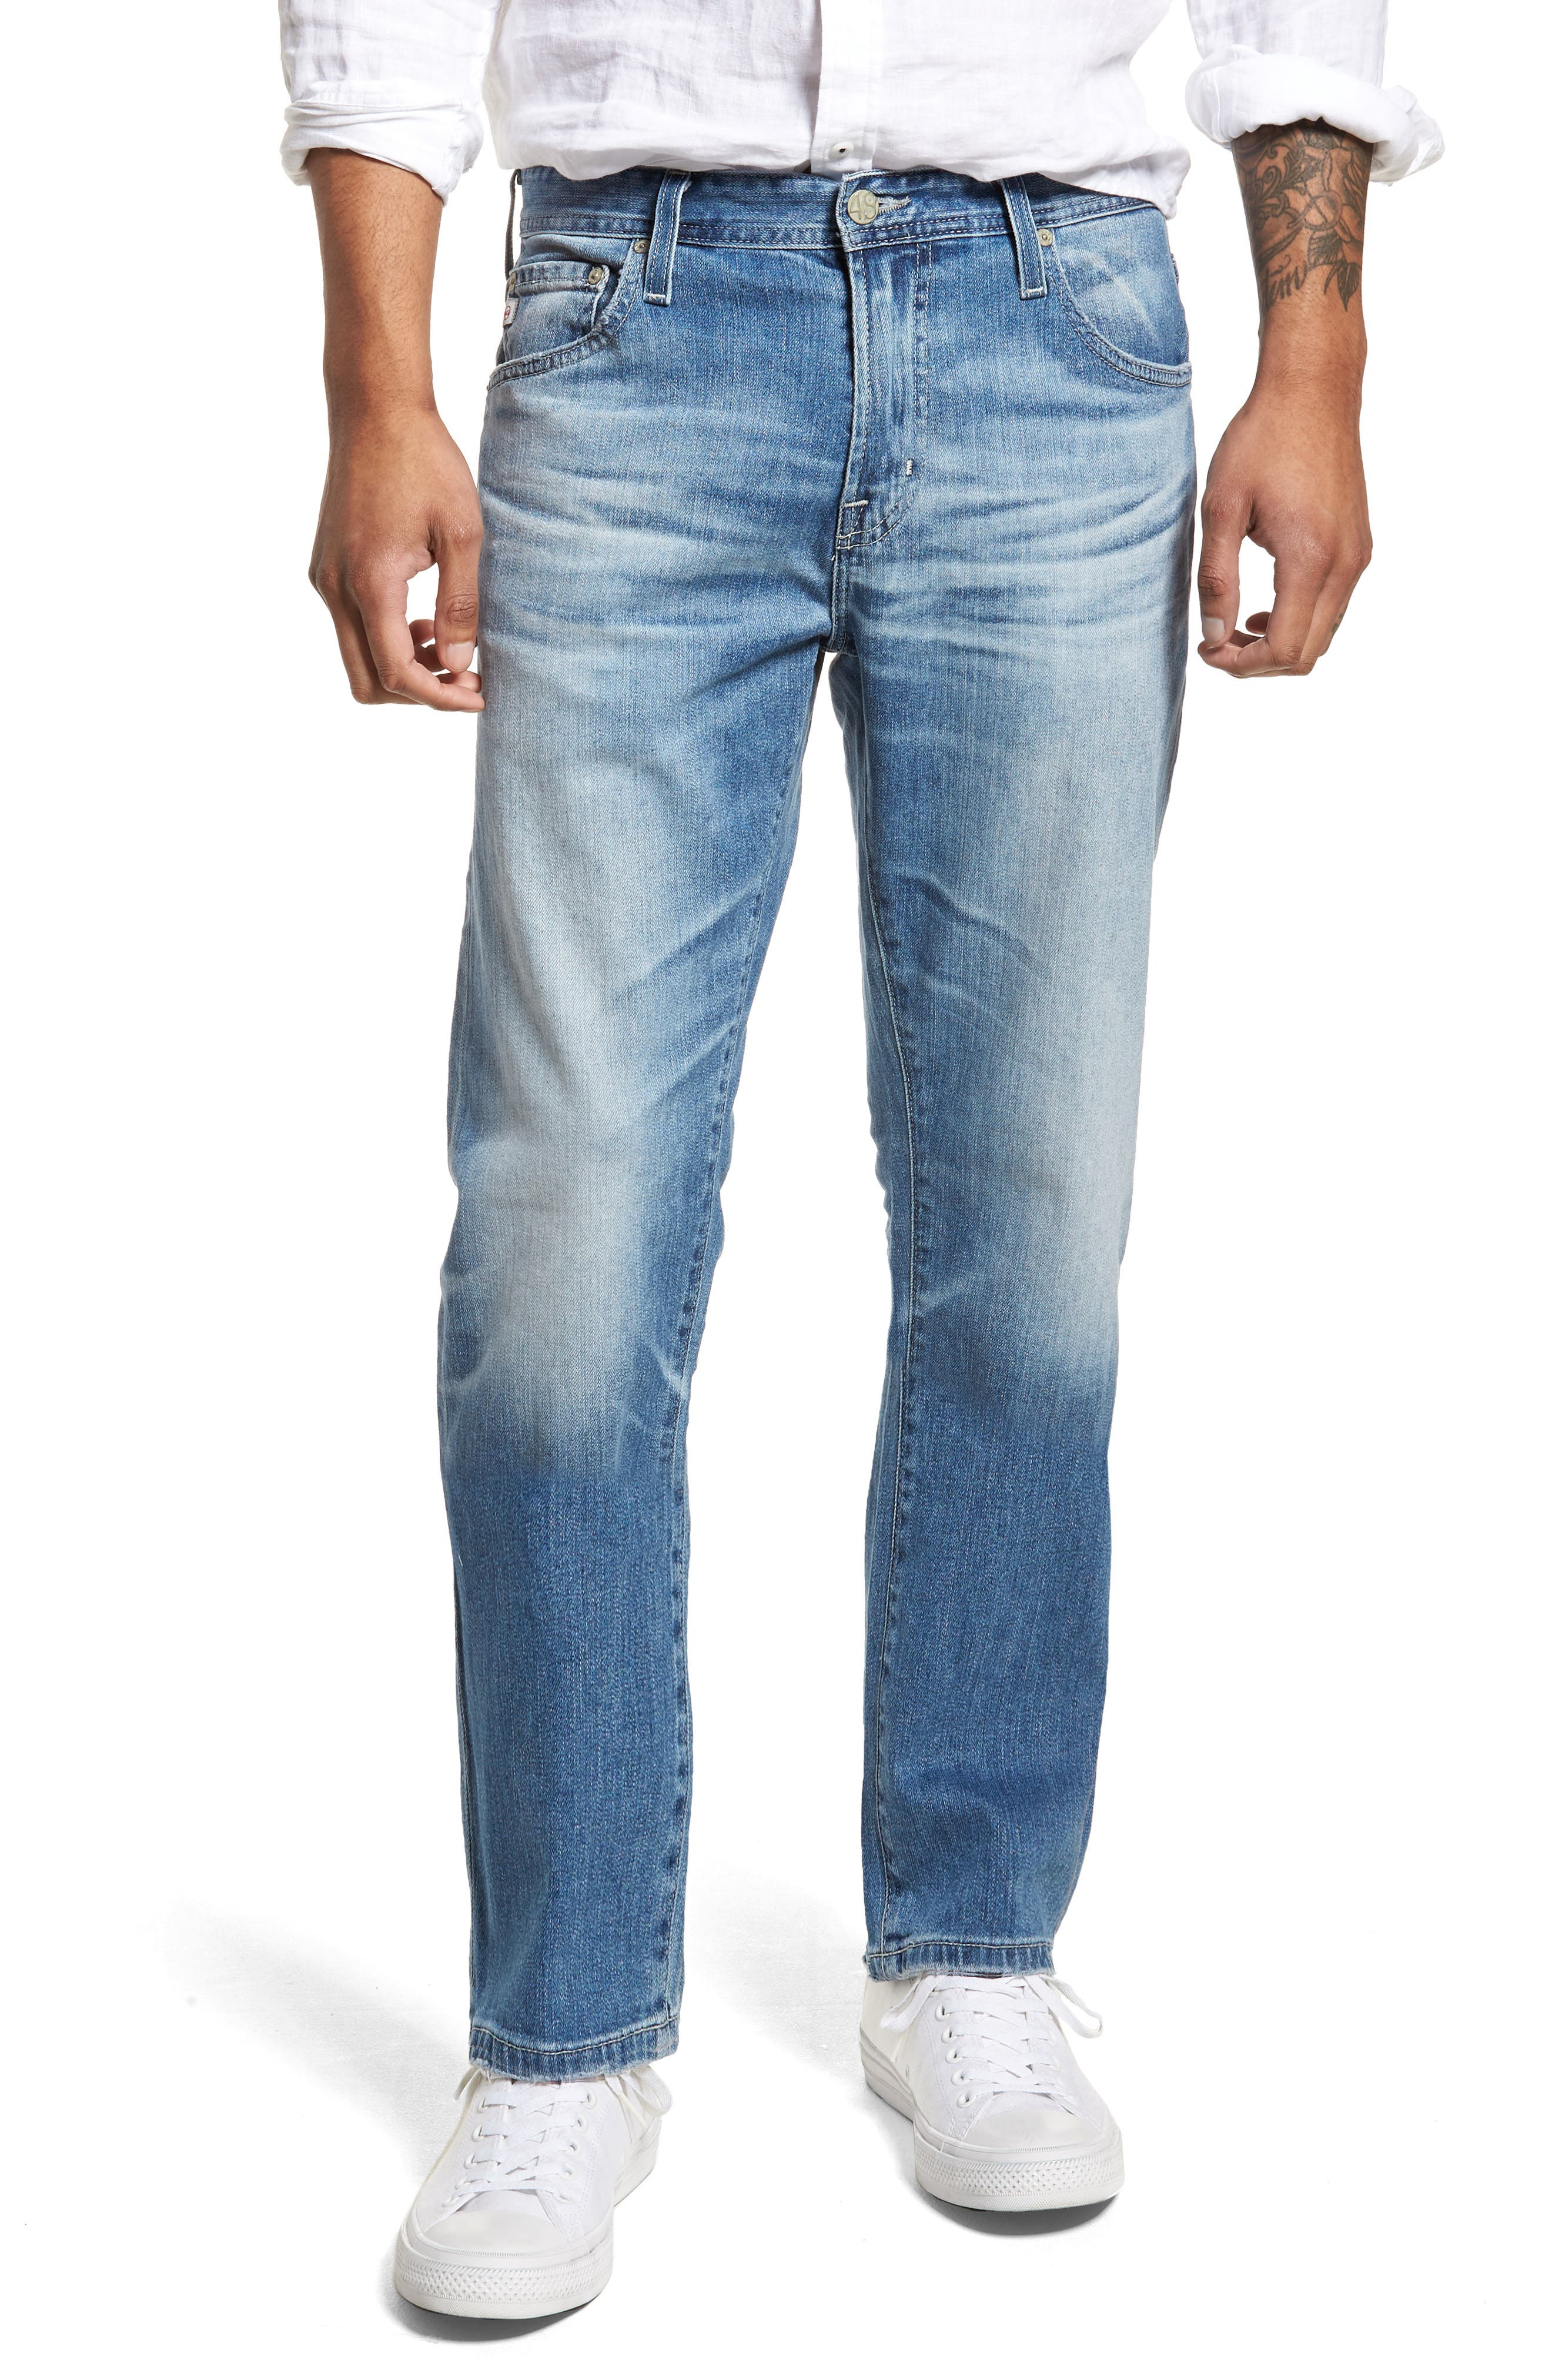 Ives Straight Leg Jeans,                             Main thumbnail 1, color,                             413